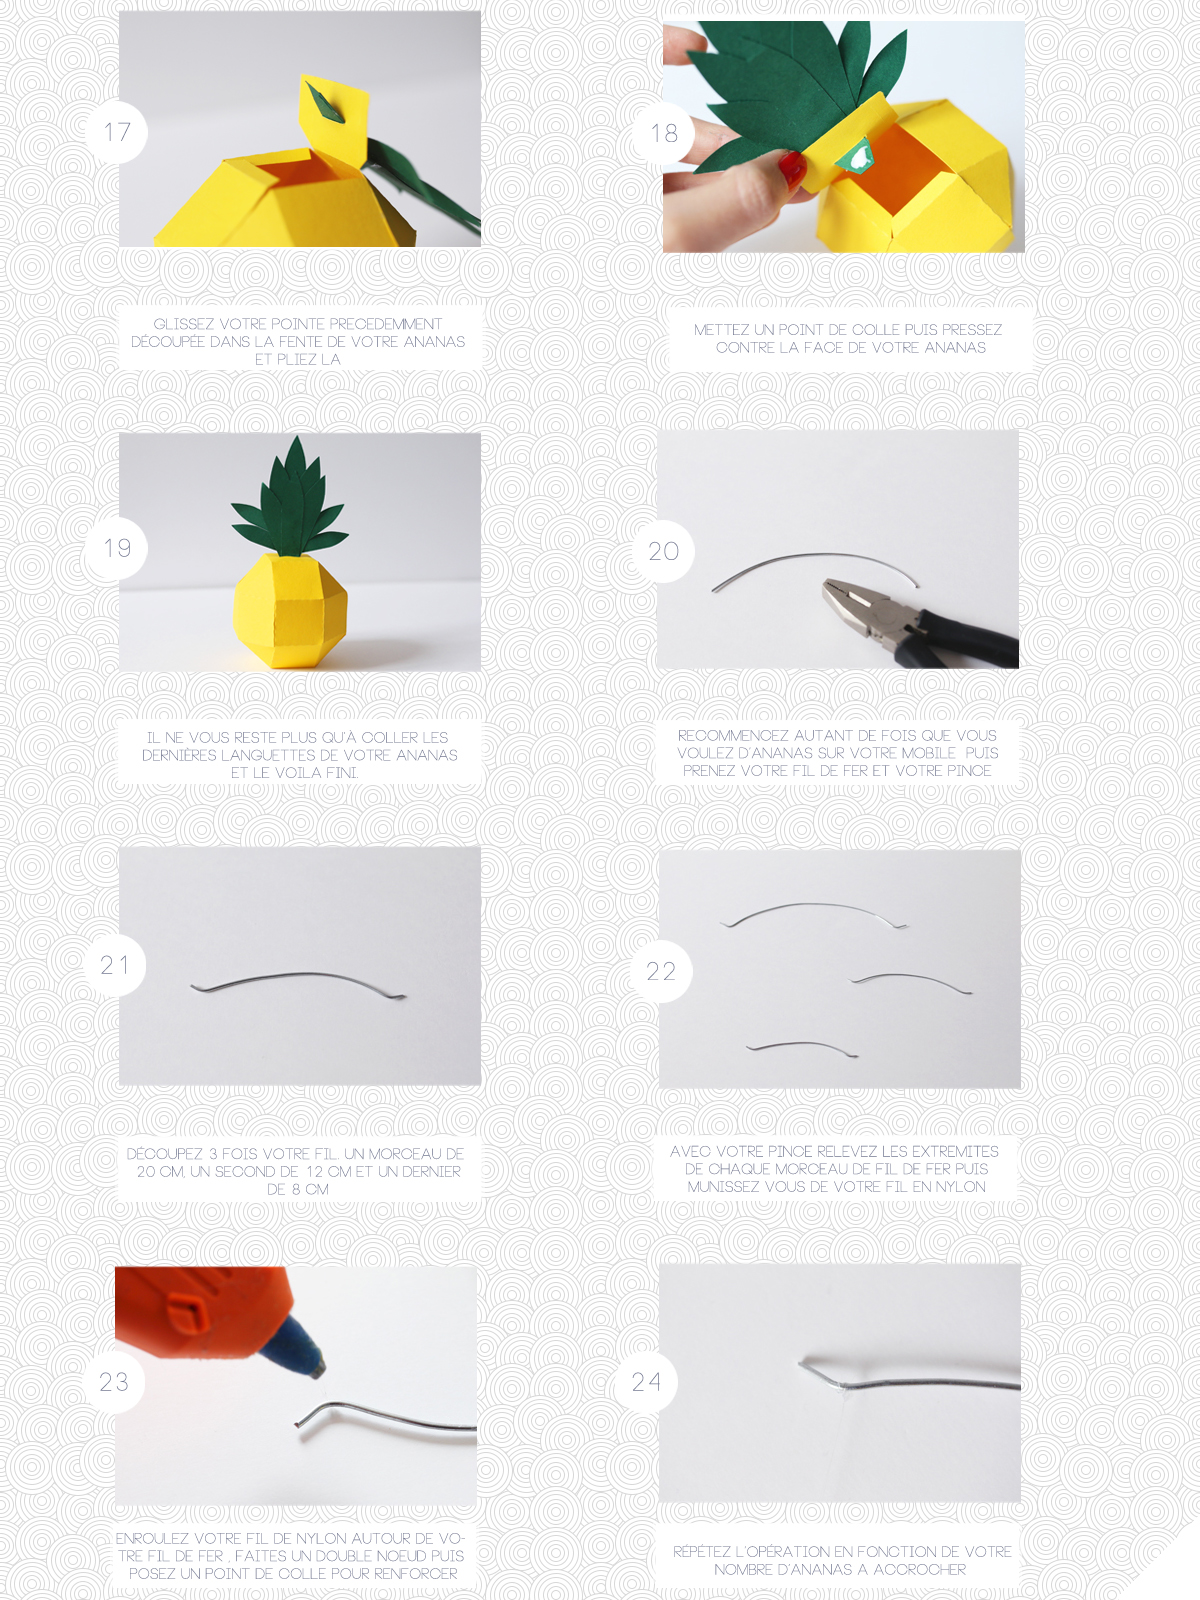 Do it yourself mobile ananas | SP4NK BLOG